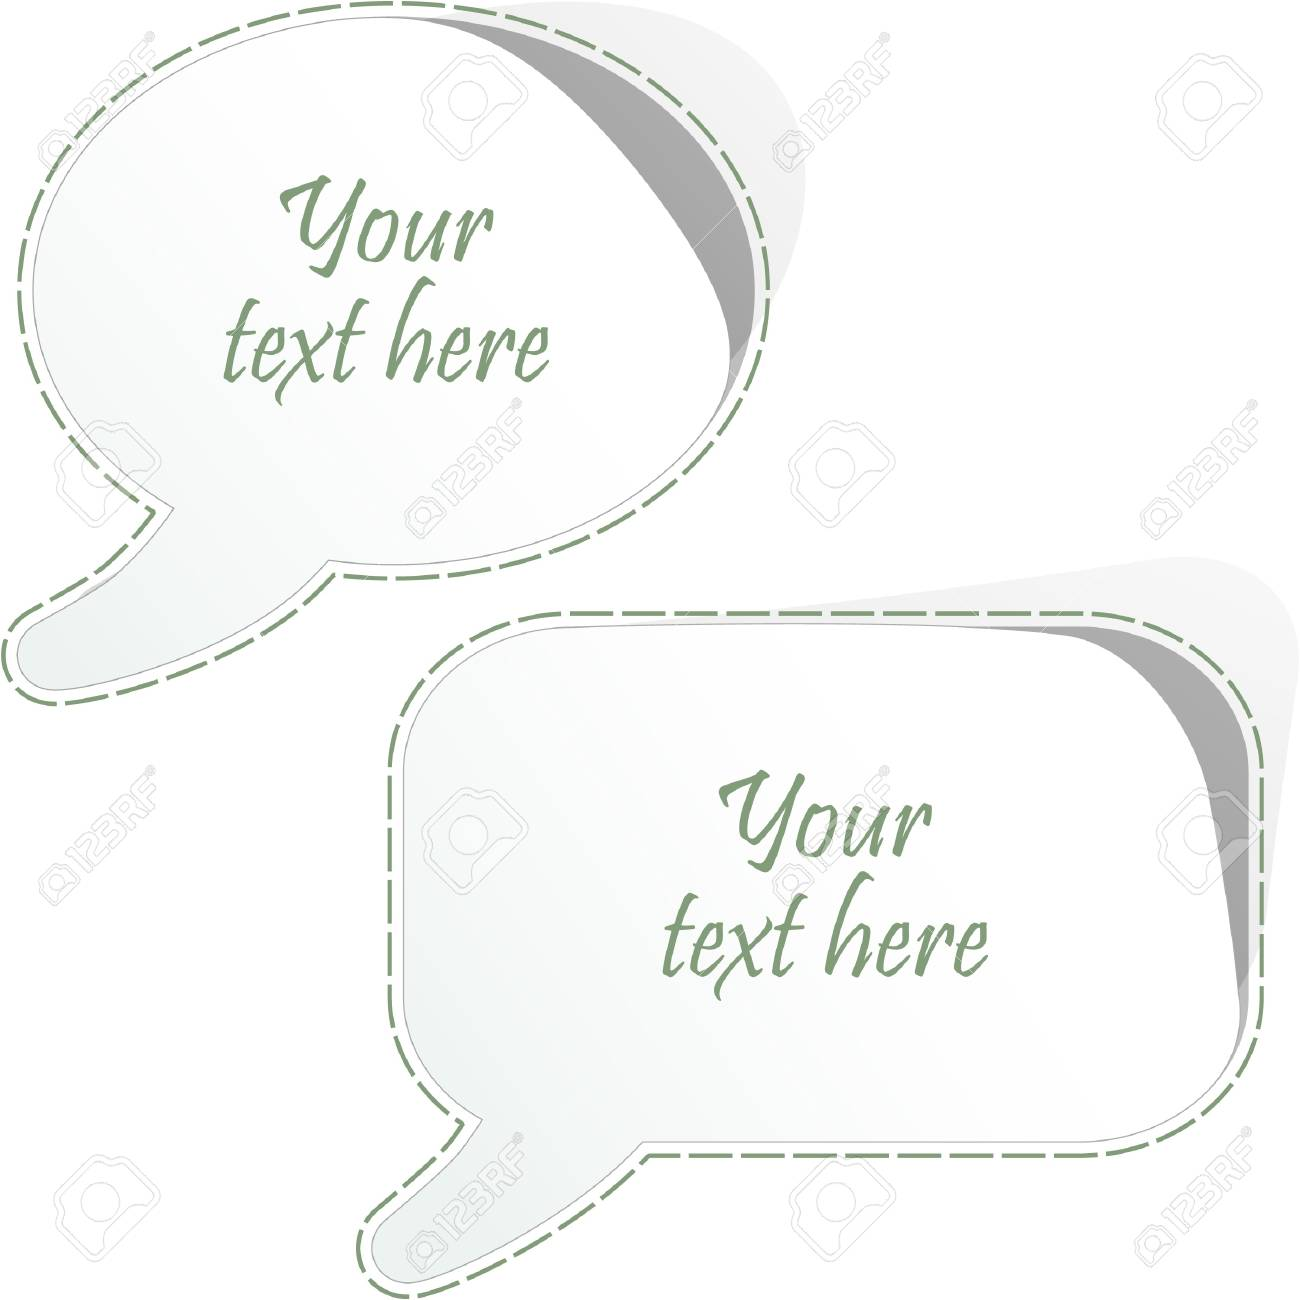 Vector speech bubble. Vector set. Stock Vector - 8890959